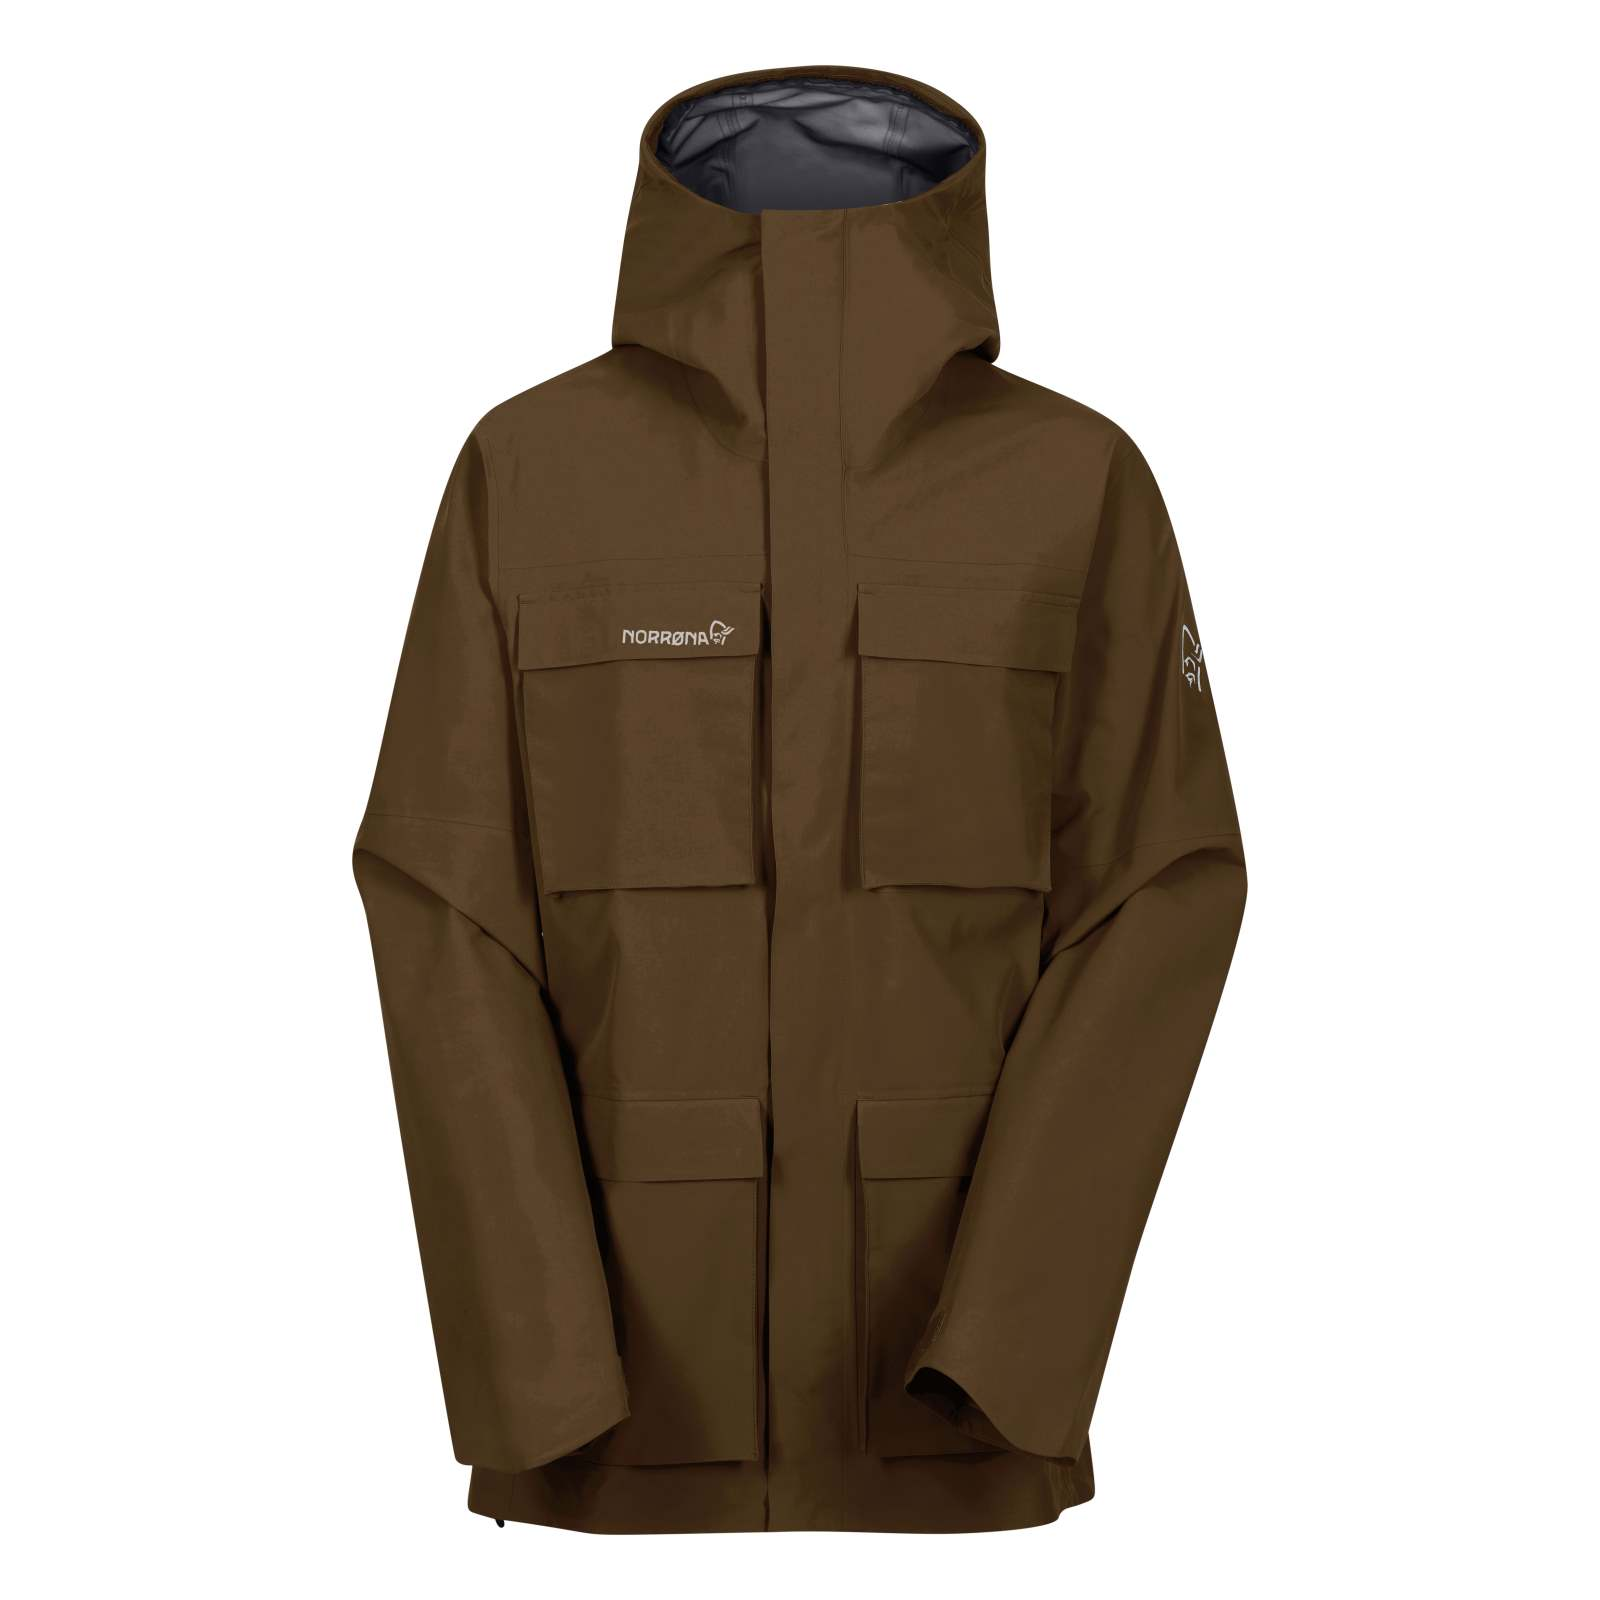 bbe67ee4d4e3 Buy Norrøna Svalbard Gore-Tex Jacket Men s (2018) from Outnorth